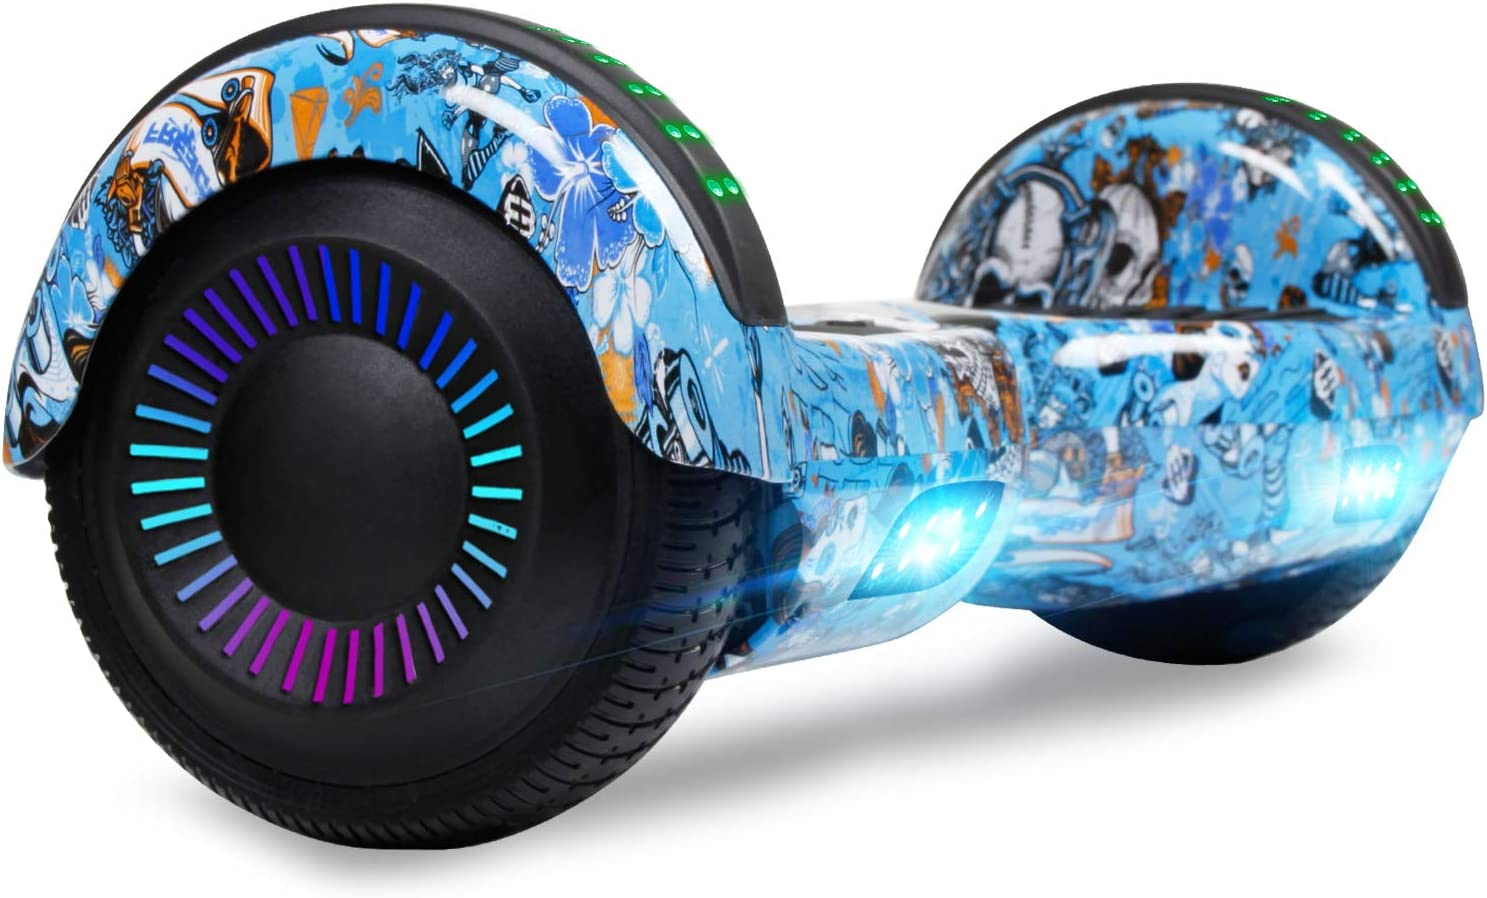 CBD Hoverboard with Bluetooth and Colorful LED Max 45% OFF 6.5 Lights inches Department store